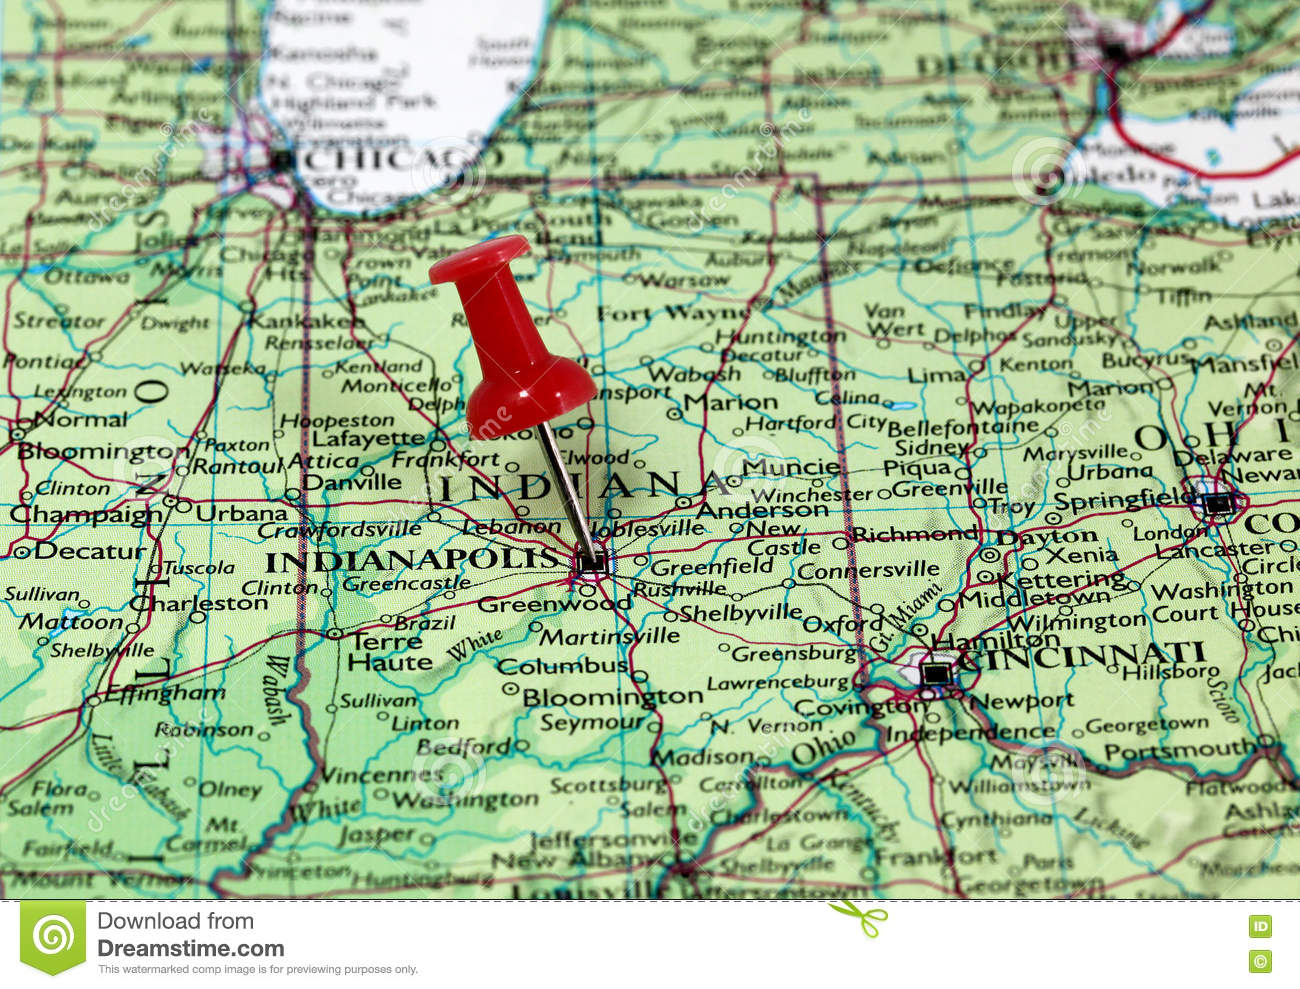 Indianapolis In USA Stock Photo Image - Indianapolis map usa